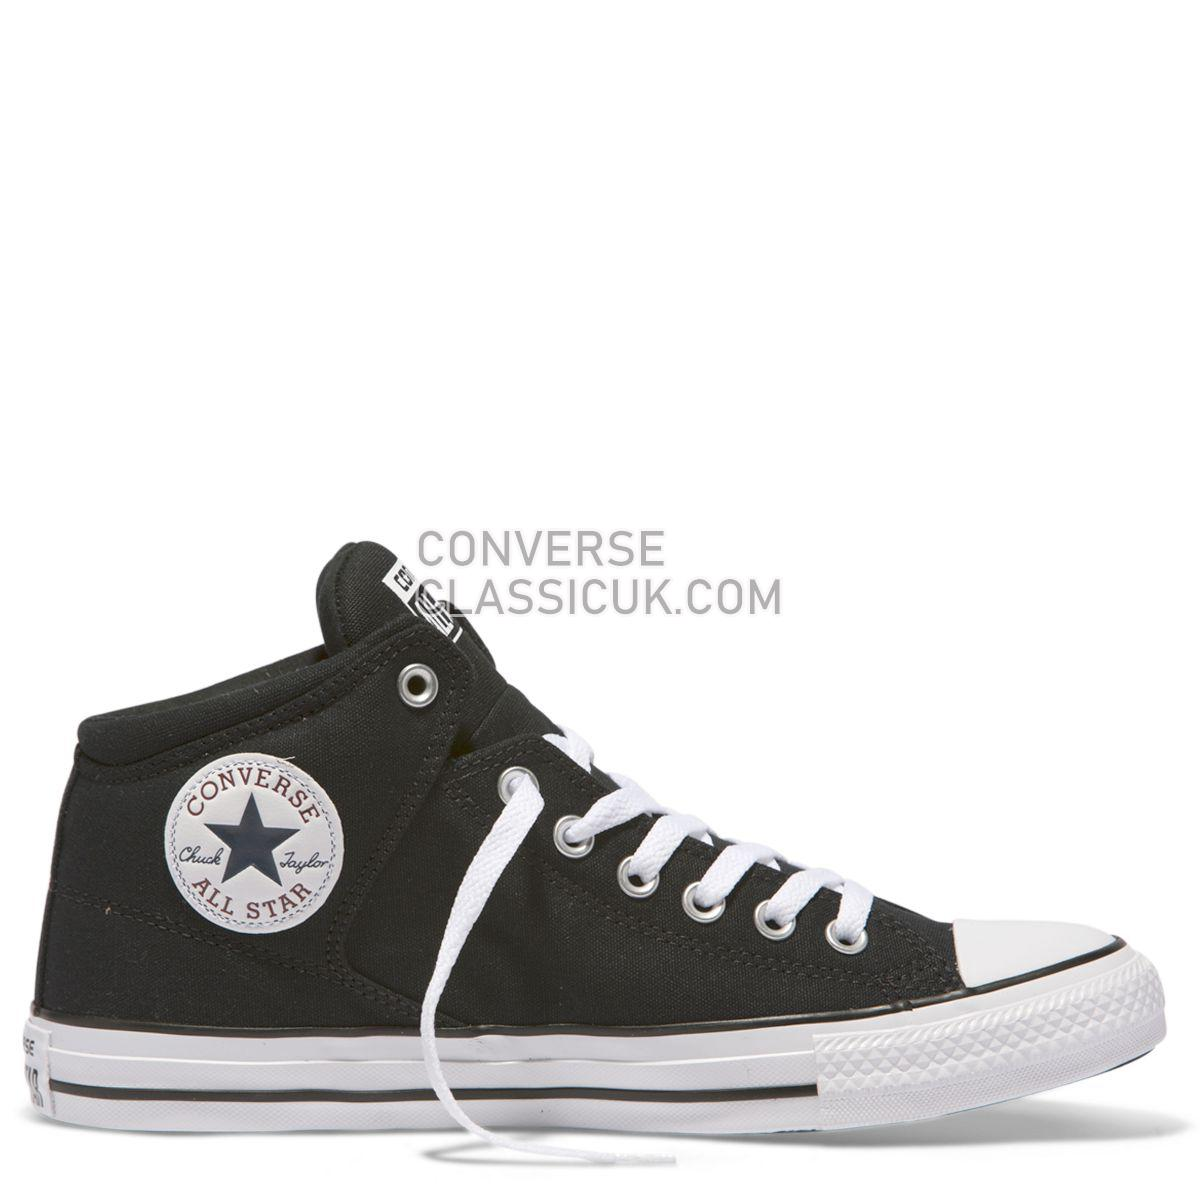 Converse Chuck Taylor All Star High Street Mid Black Mens Womens Unisex 151041 Black/Black/White Shoes